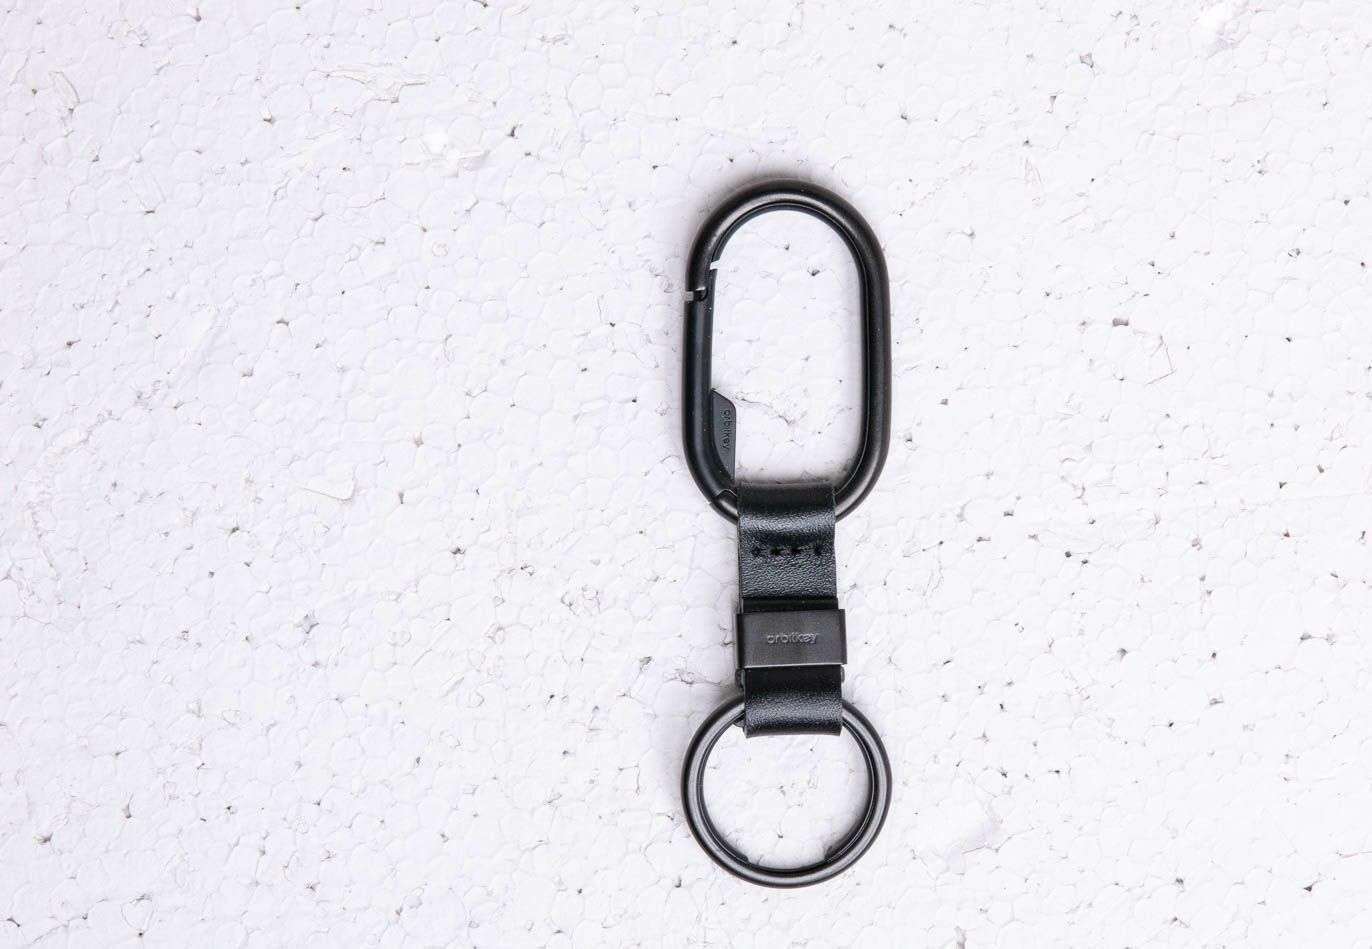 Orbitkey Clip All Black